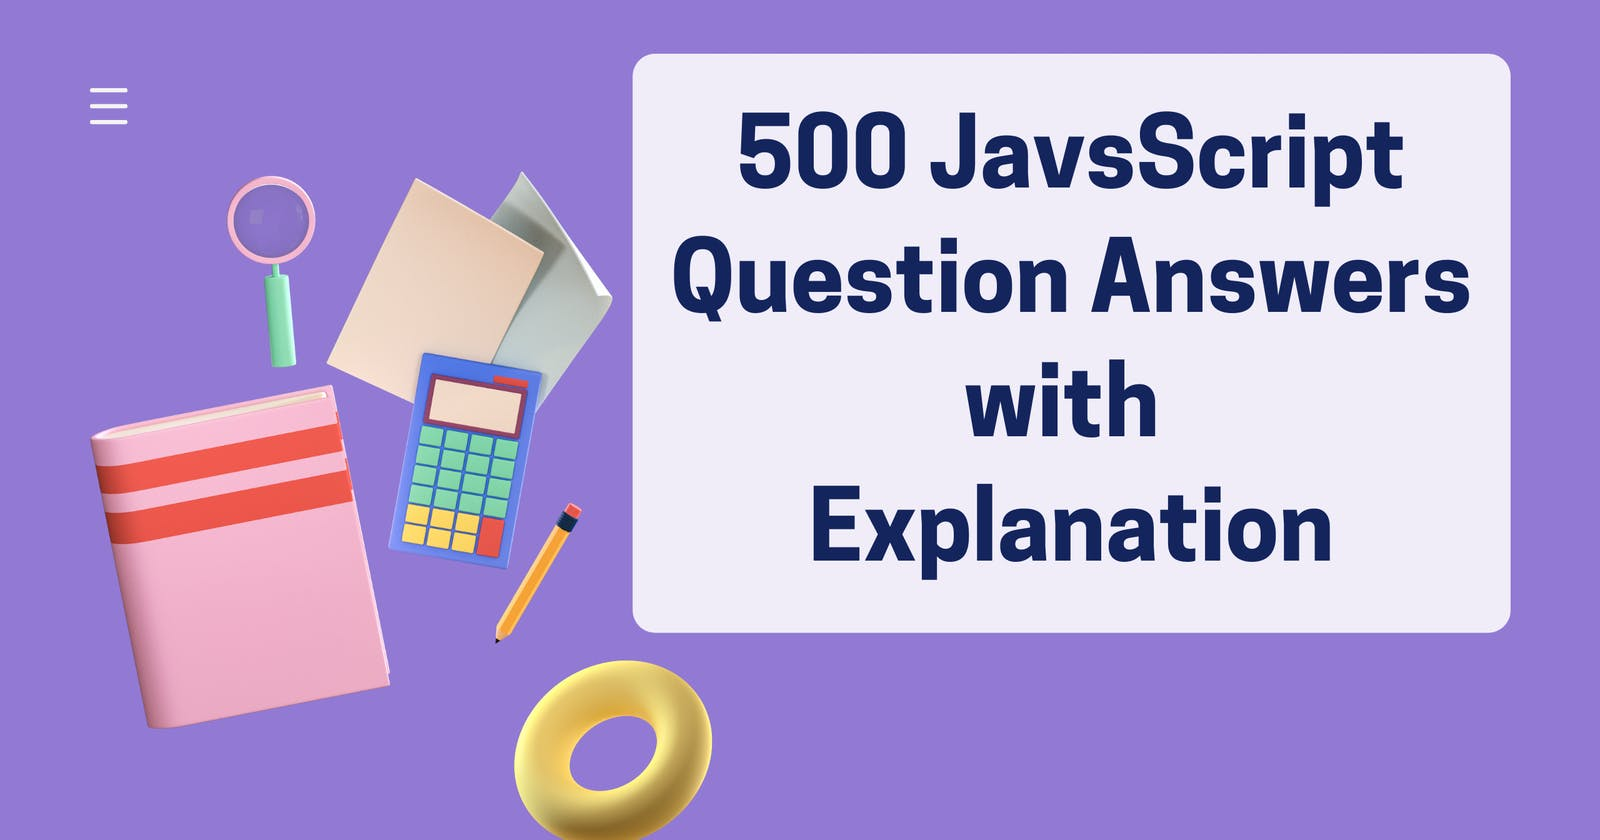 Part-3 : 500 JavaScript Important Questions with Answers and Explanation